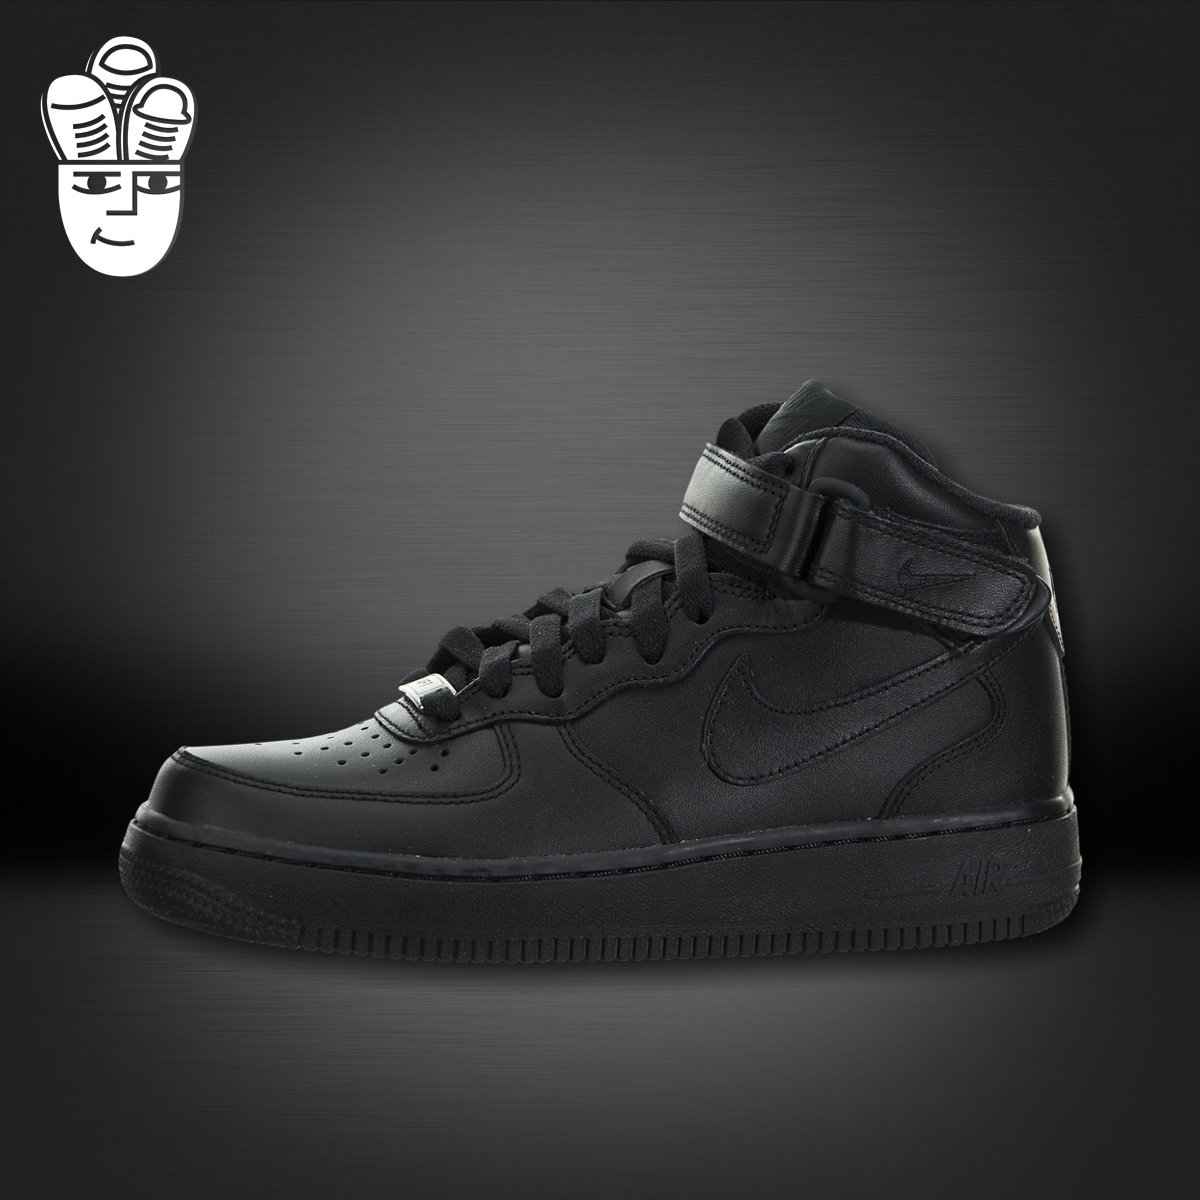 innovative design 94695 4bbb3 Buy Nike air force 1 mid '07 le nike air force one ...